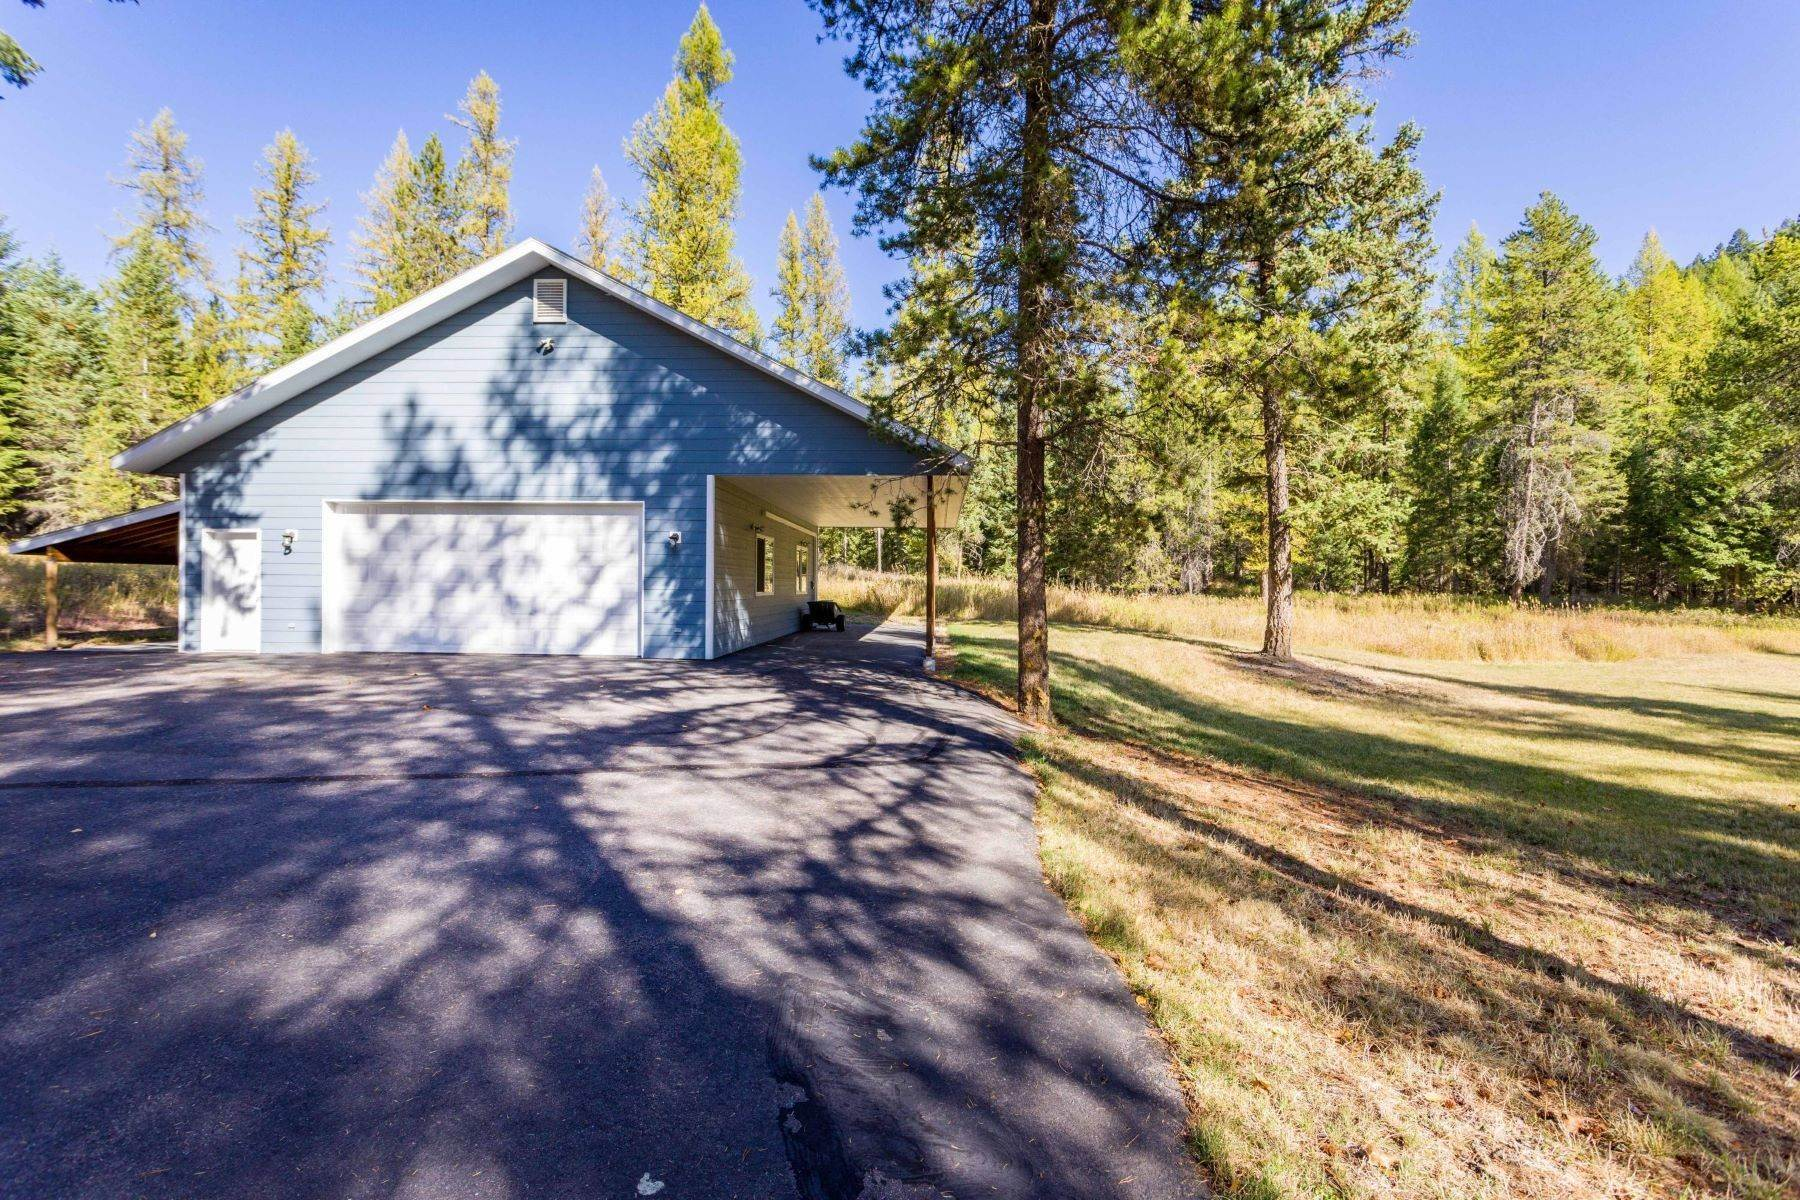 13. Land for Sale at Northwest Montana Forest, Meadows and Ponds 295 Garland Lane Whitefish, Montana 59937 United States